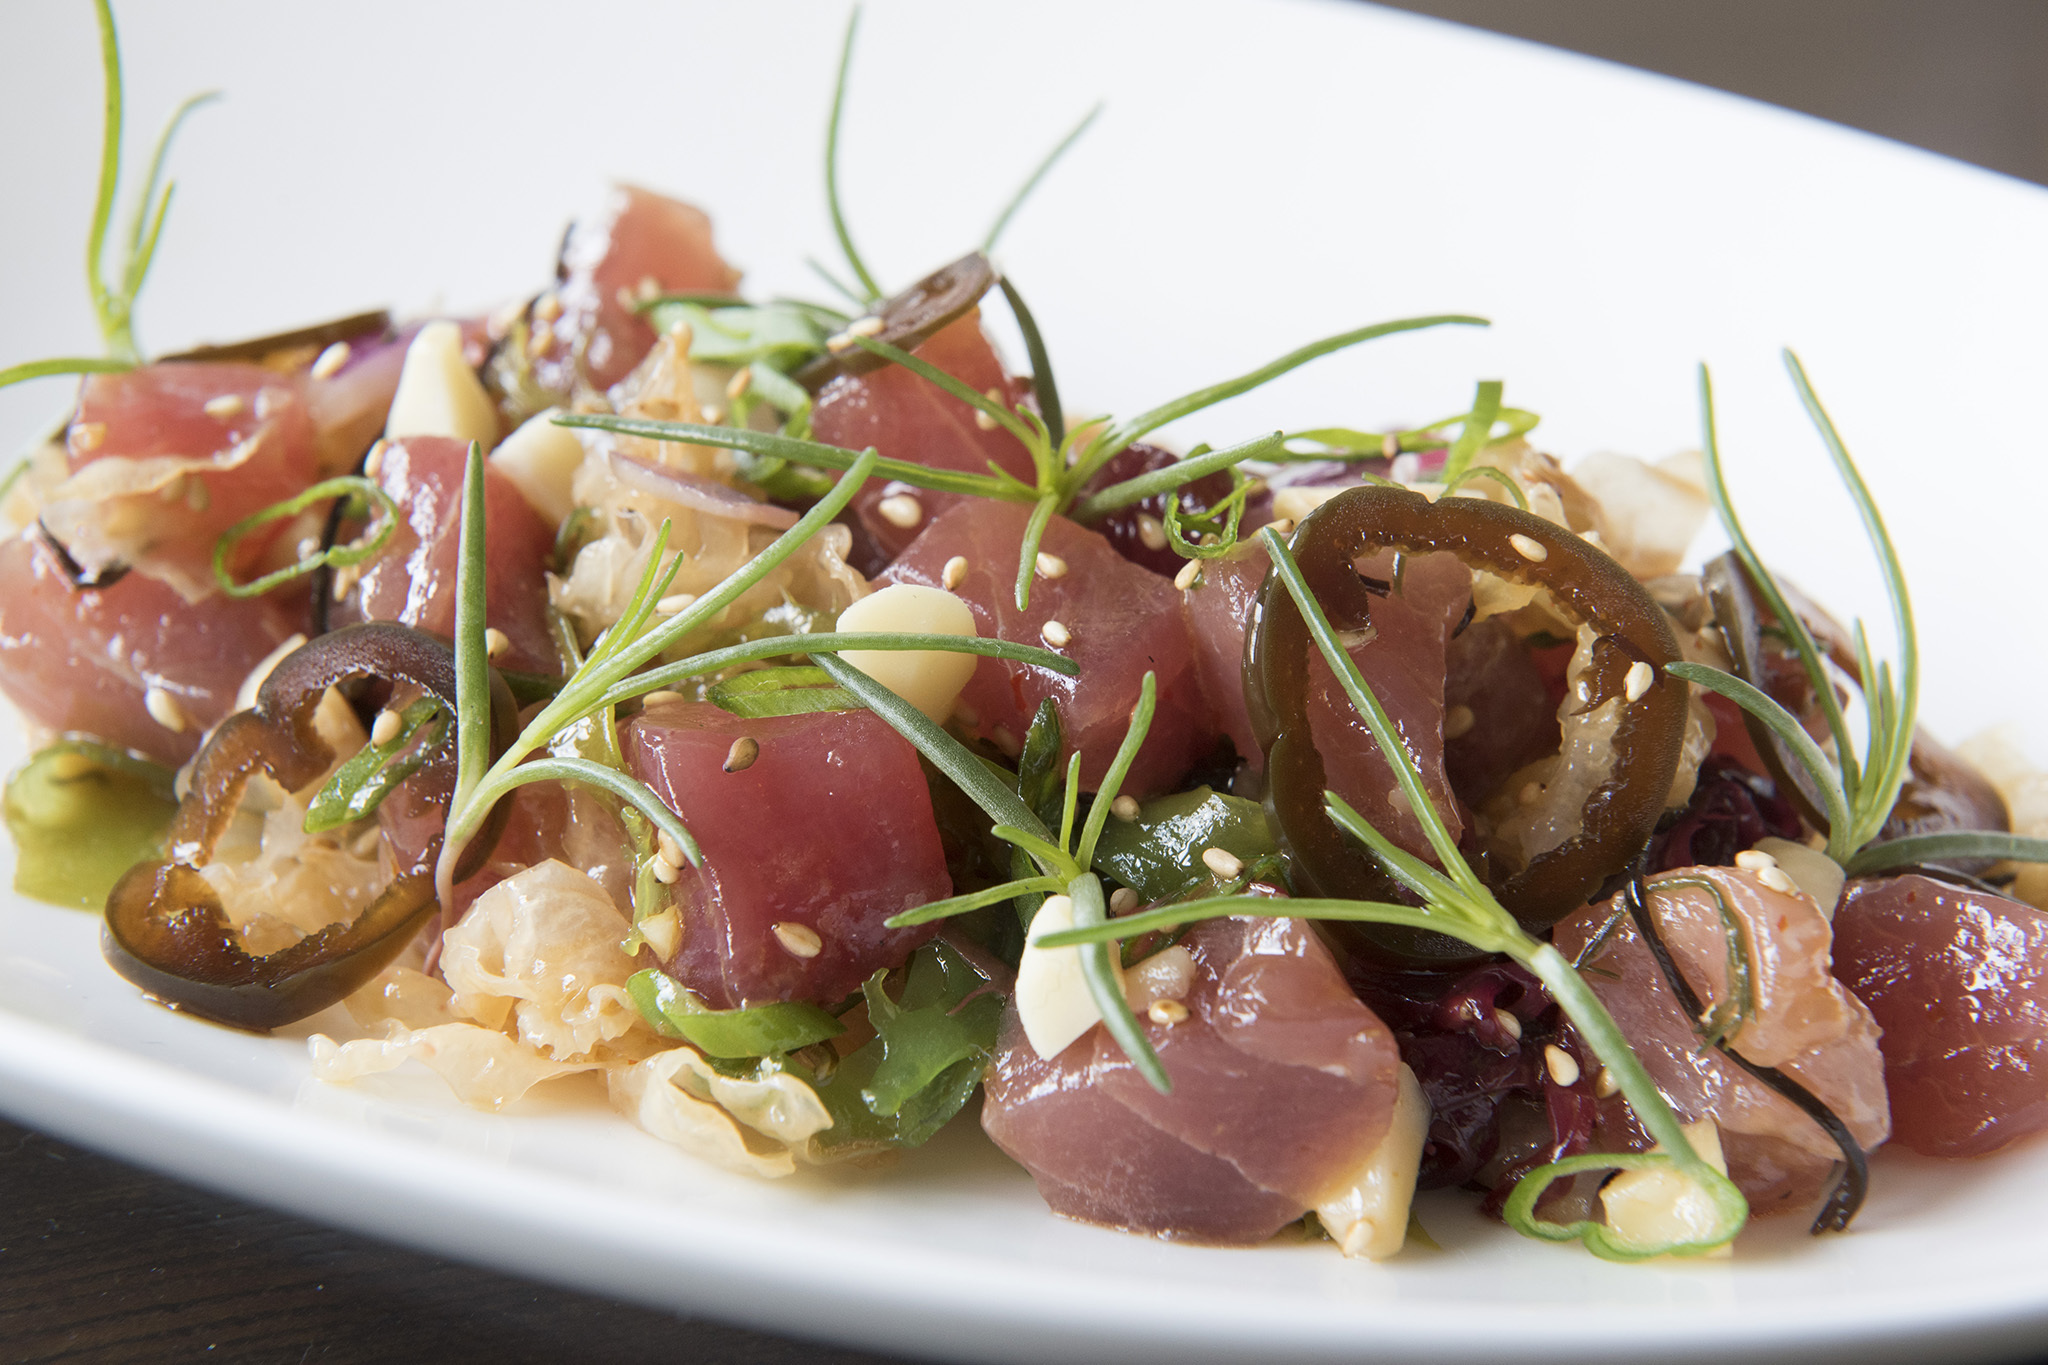 big-eye tuna poke, macadamia nuts, pickled jalapeño, seawead